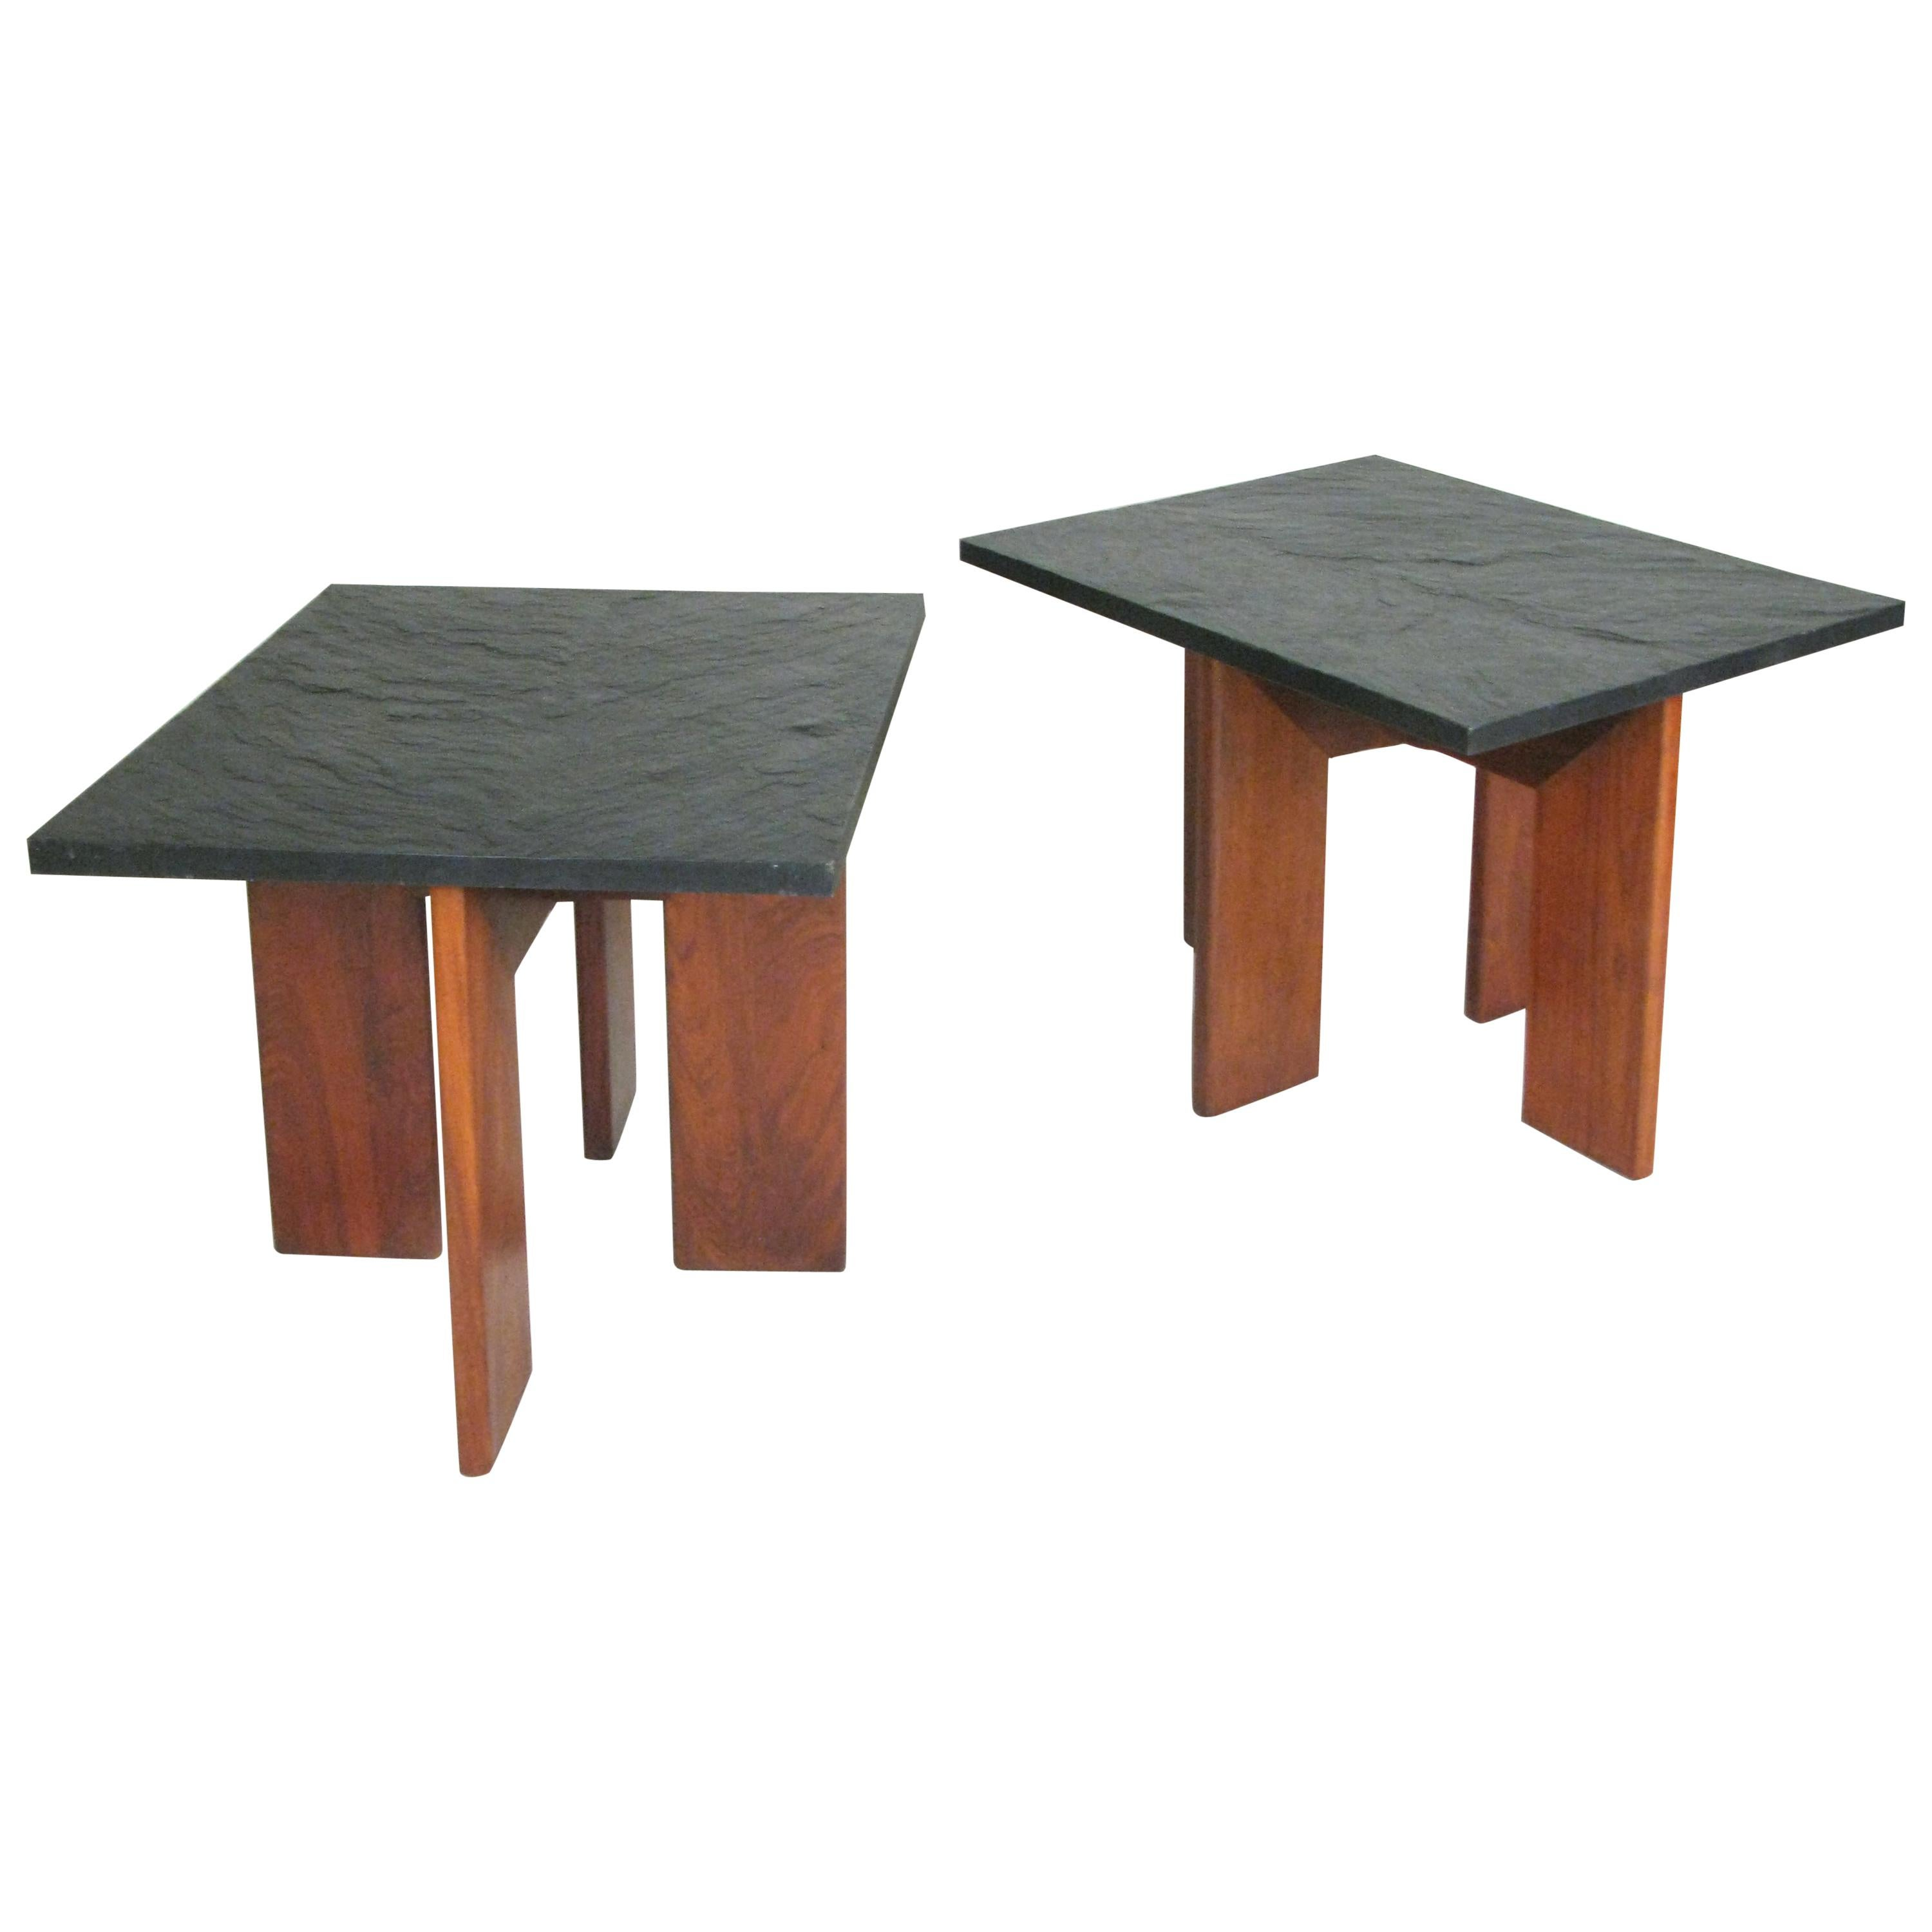 Pair of Modern Walnut and Slate Tables by Adrian Pearsall for Craft Associates